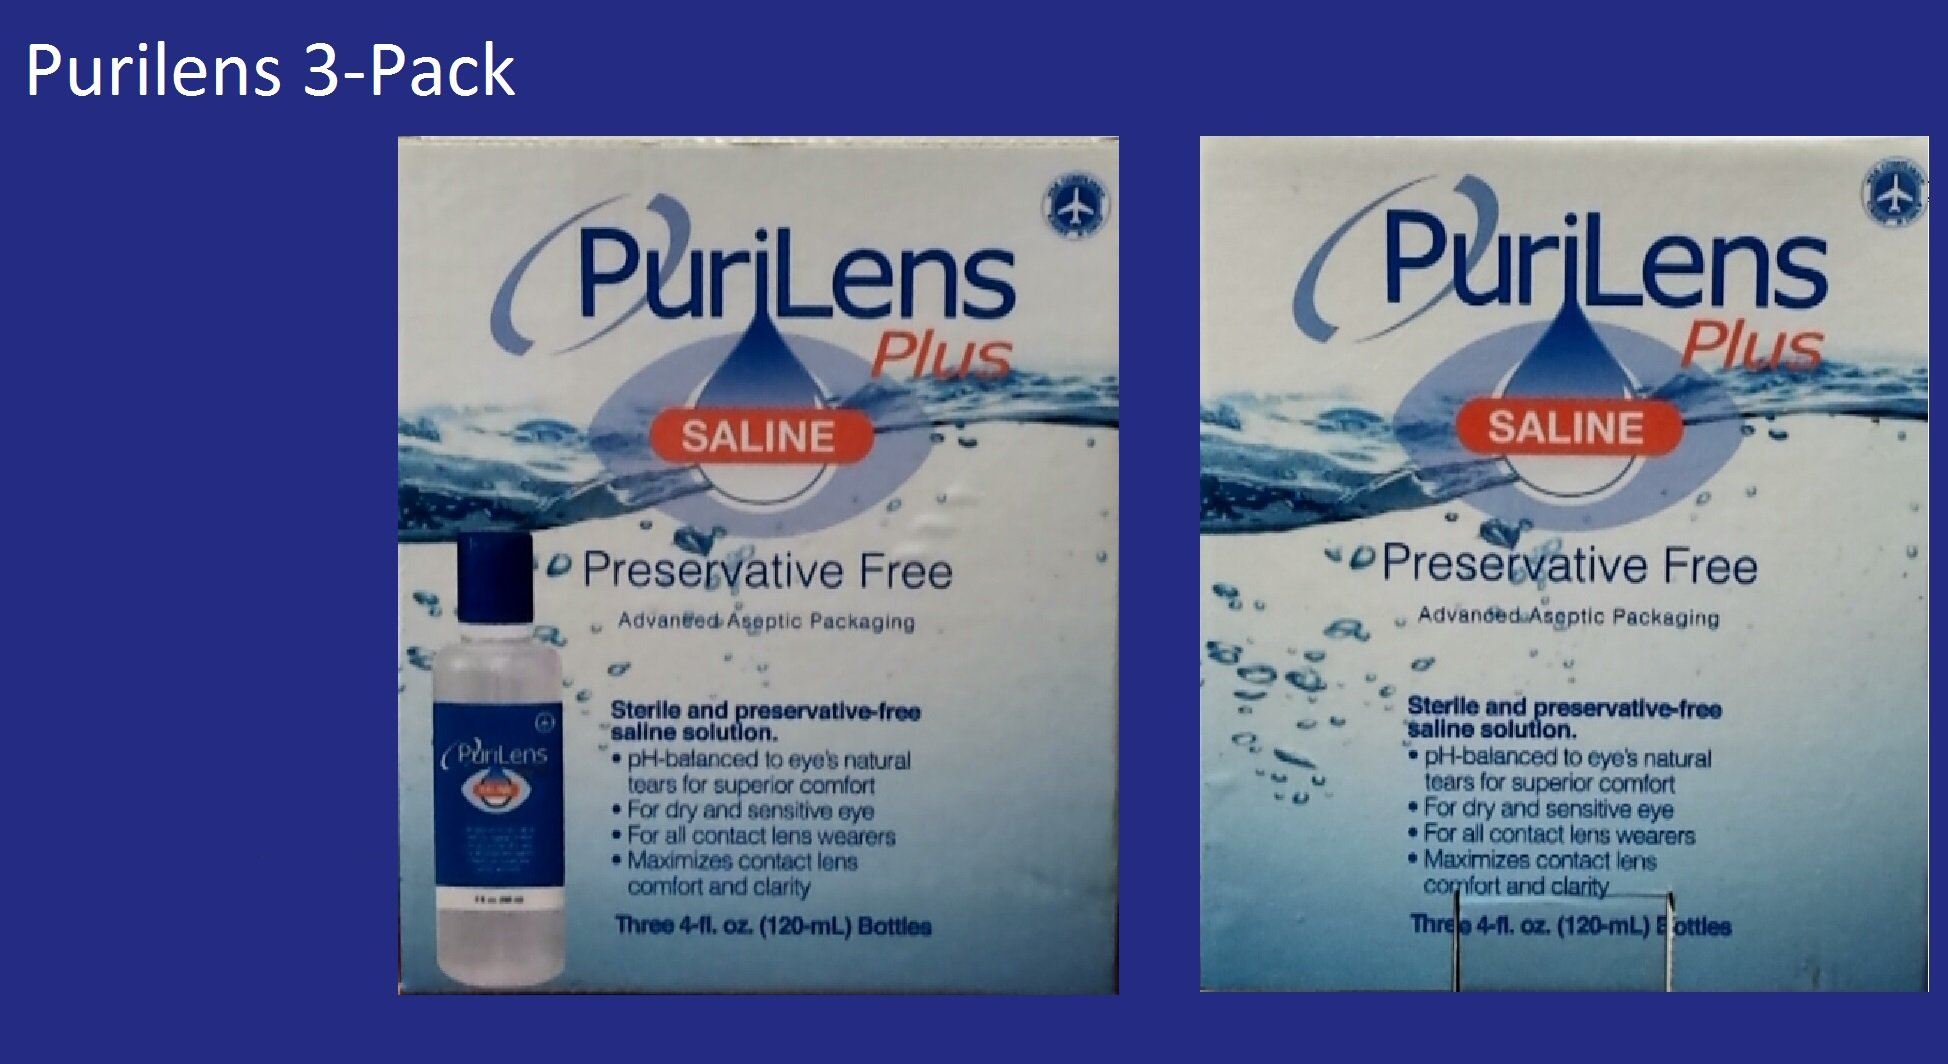 PuriLens Plus Preservative Free Saline Three 4-fl. oz(120-mL) Bottles